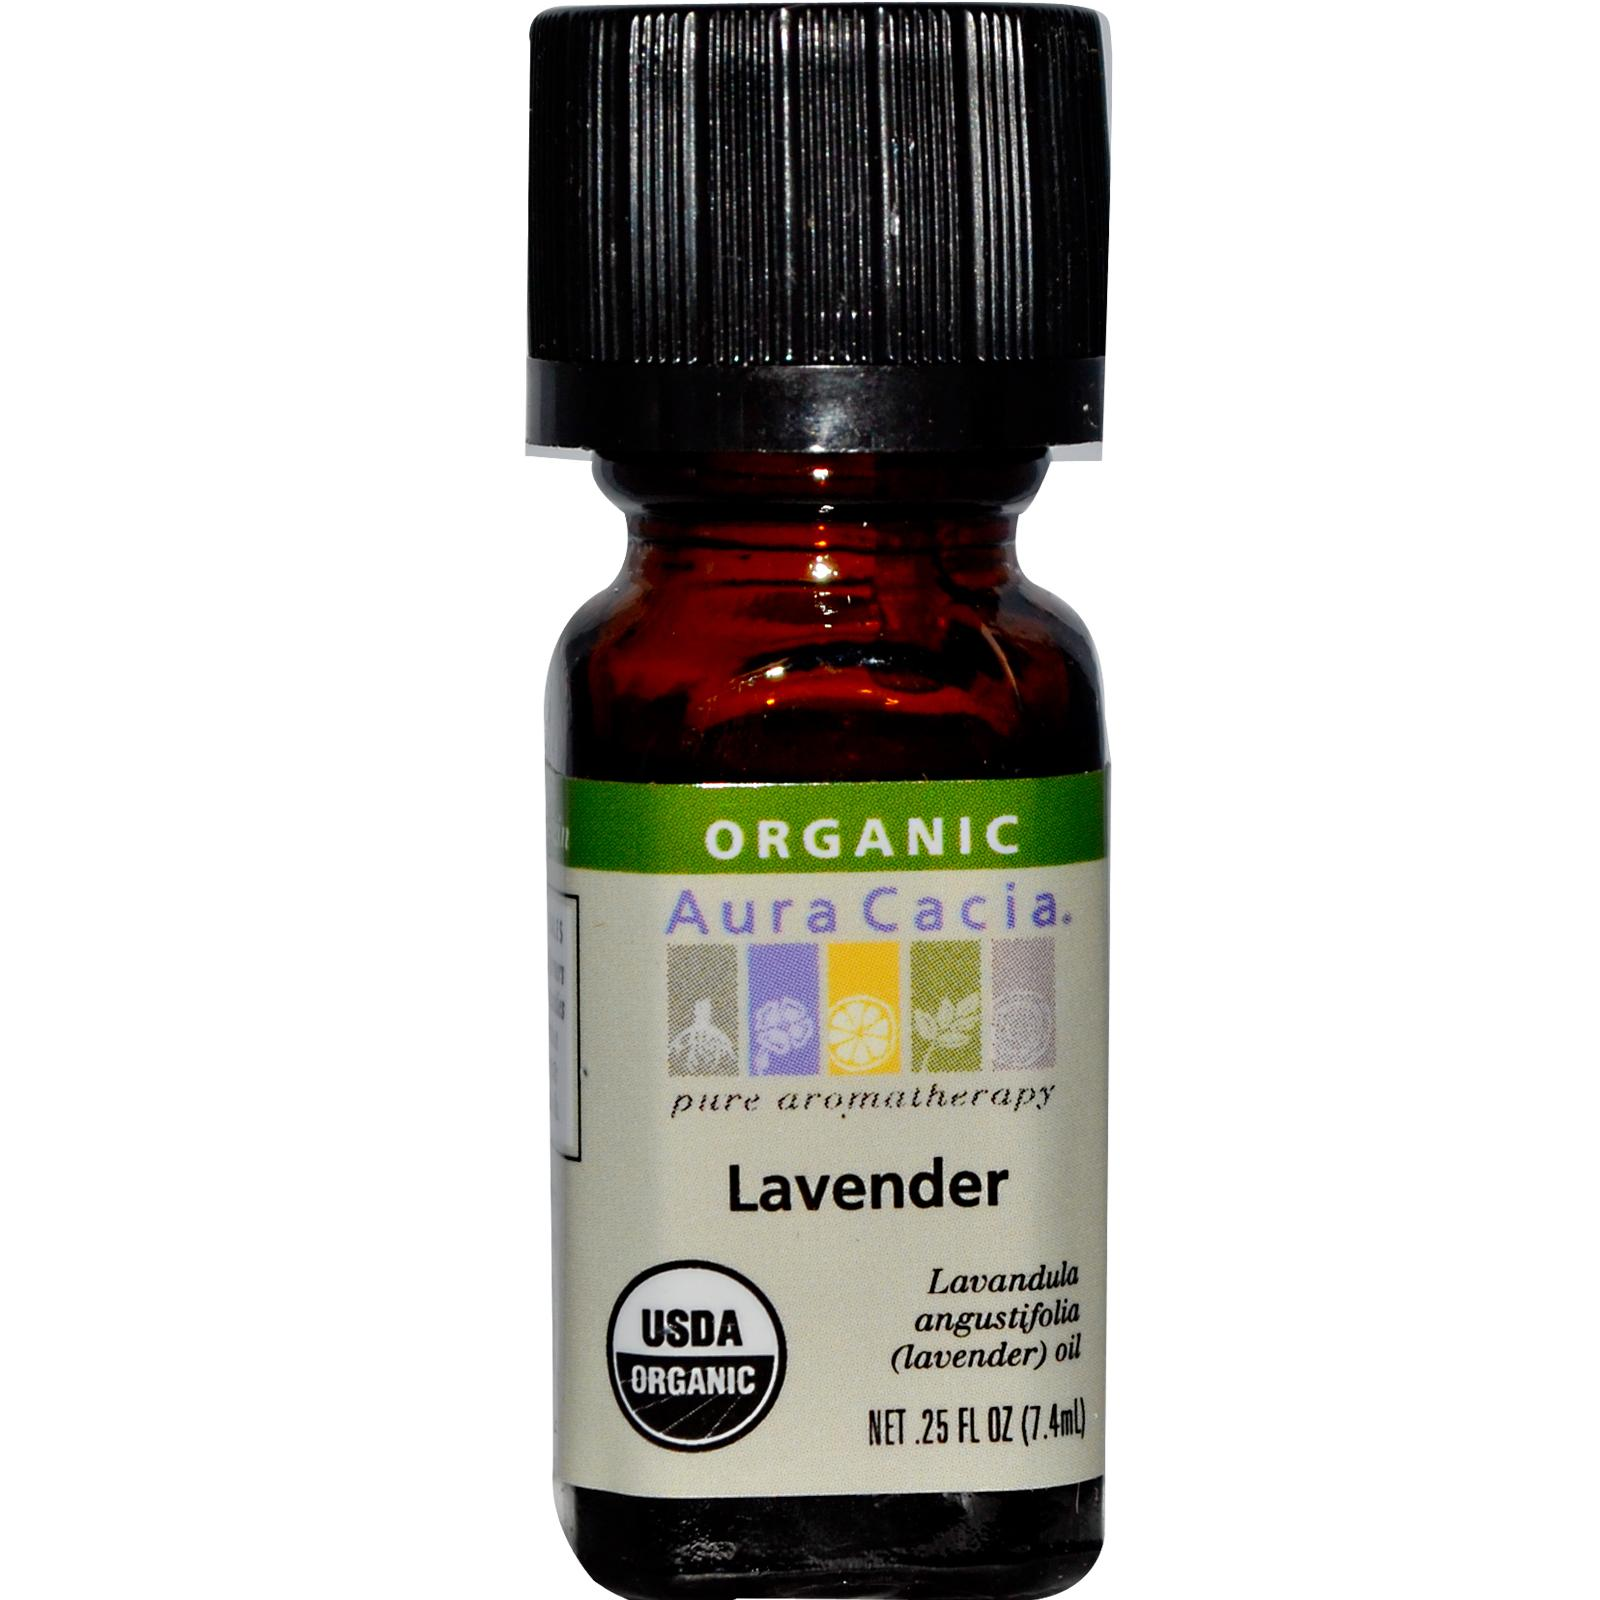 Organic Essential Oil - Aura Cacia - Lavender aromatherapy, essential oil, organic, all natural, aura cacia, certified, doTerra,  therapeutic grade, pure, lavender,